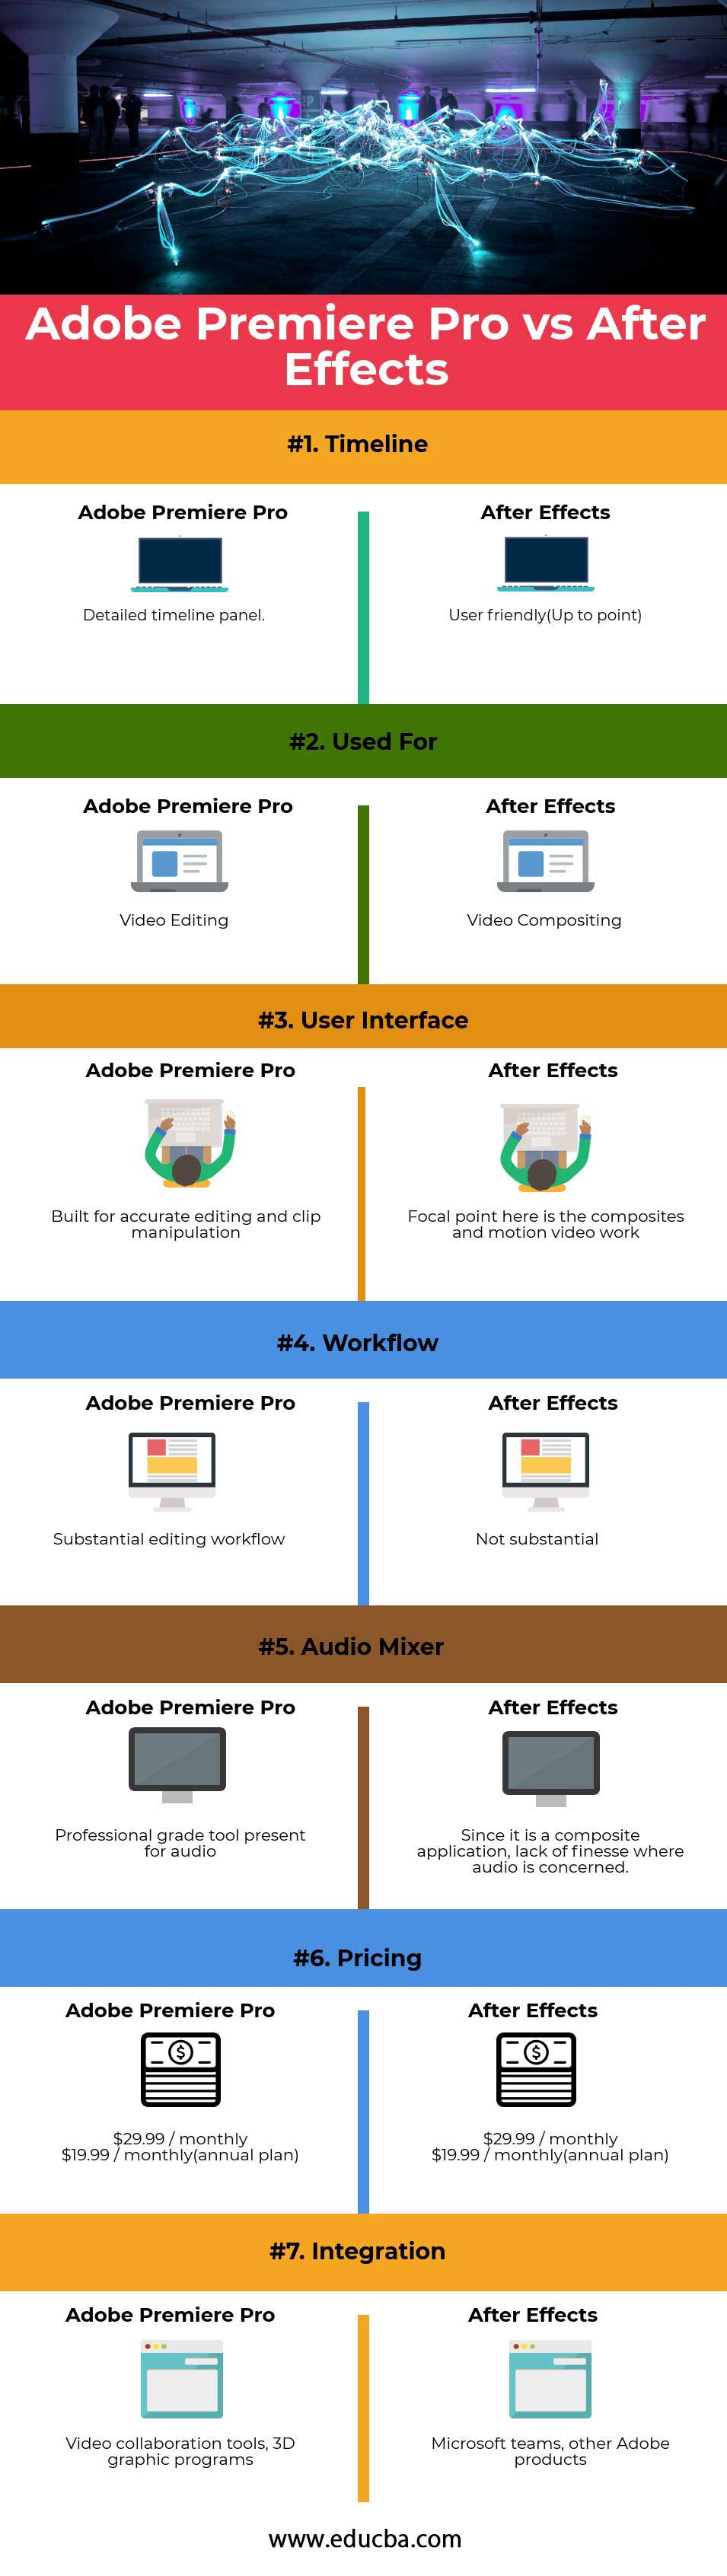 Adobe Premiere Pro vs After-Effects info